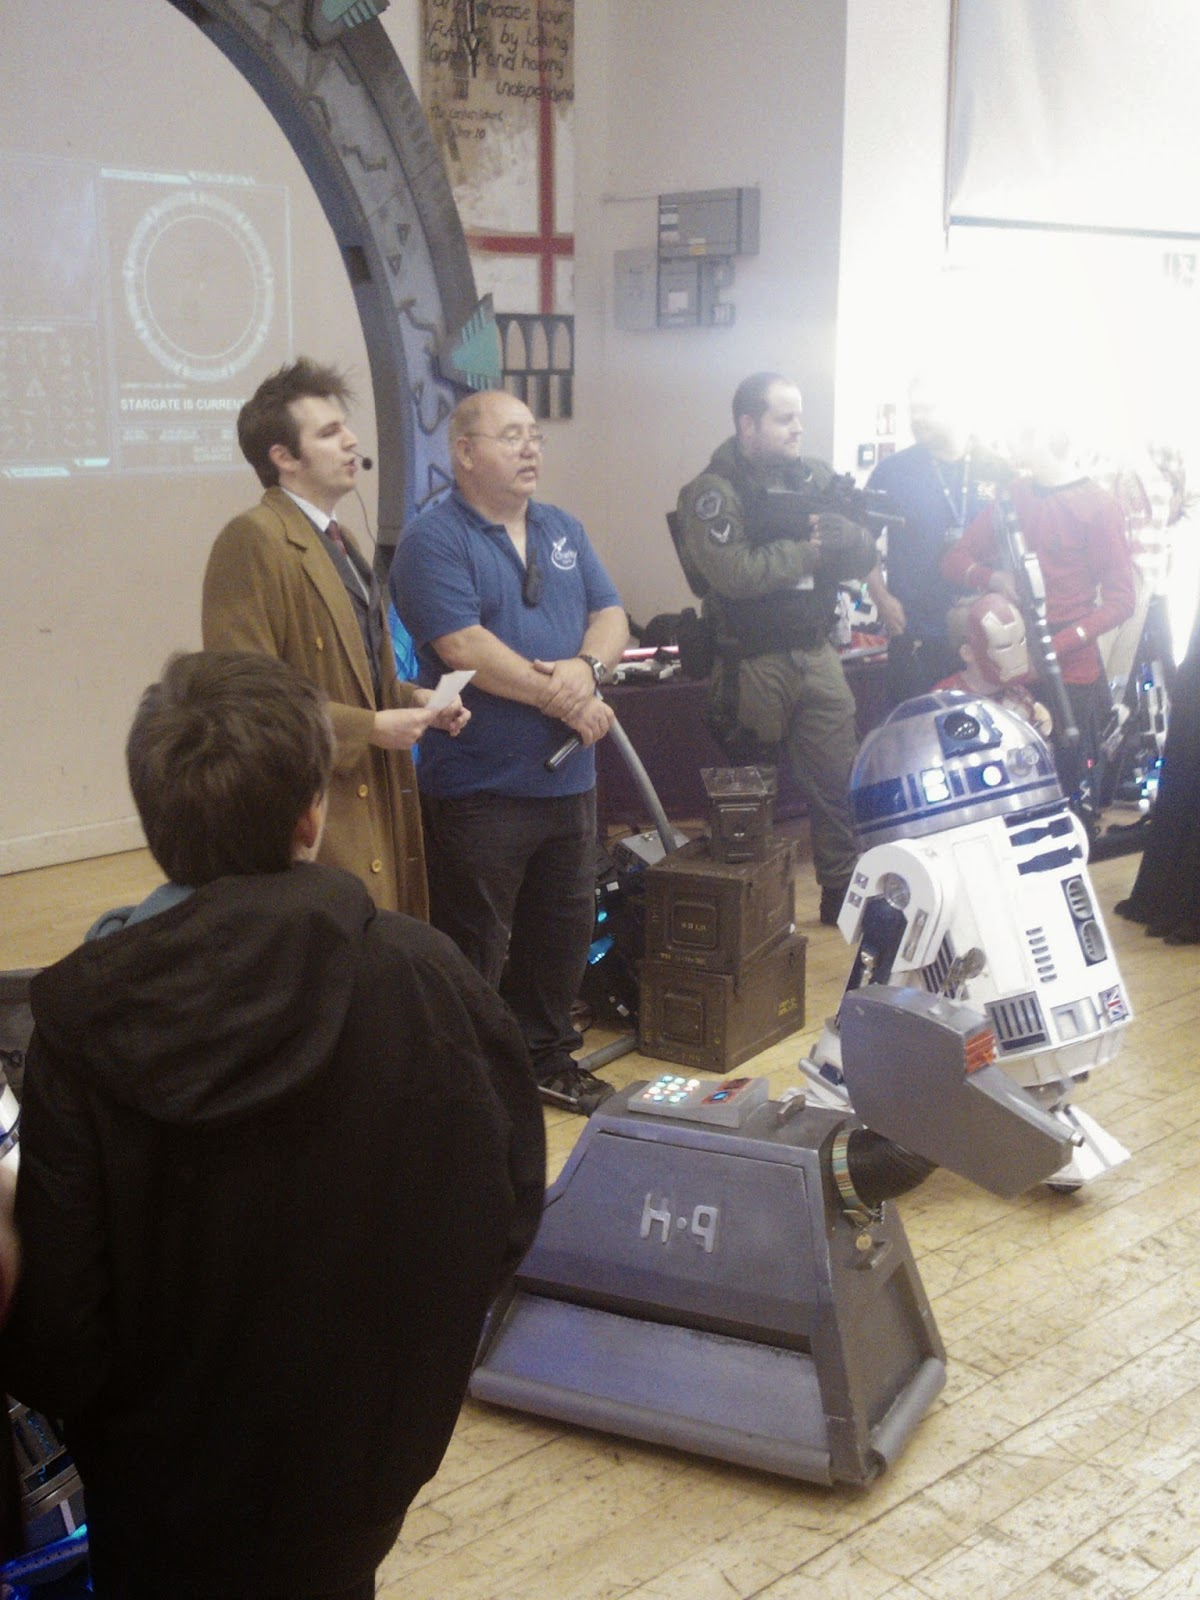 Corsham Charity Sci-Fi fun day 2014